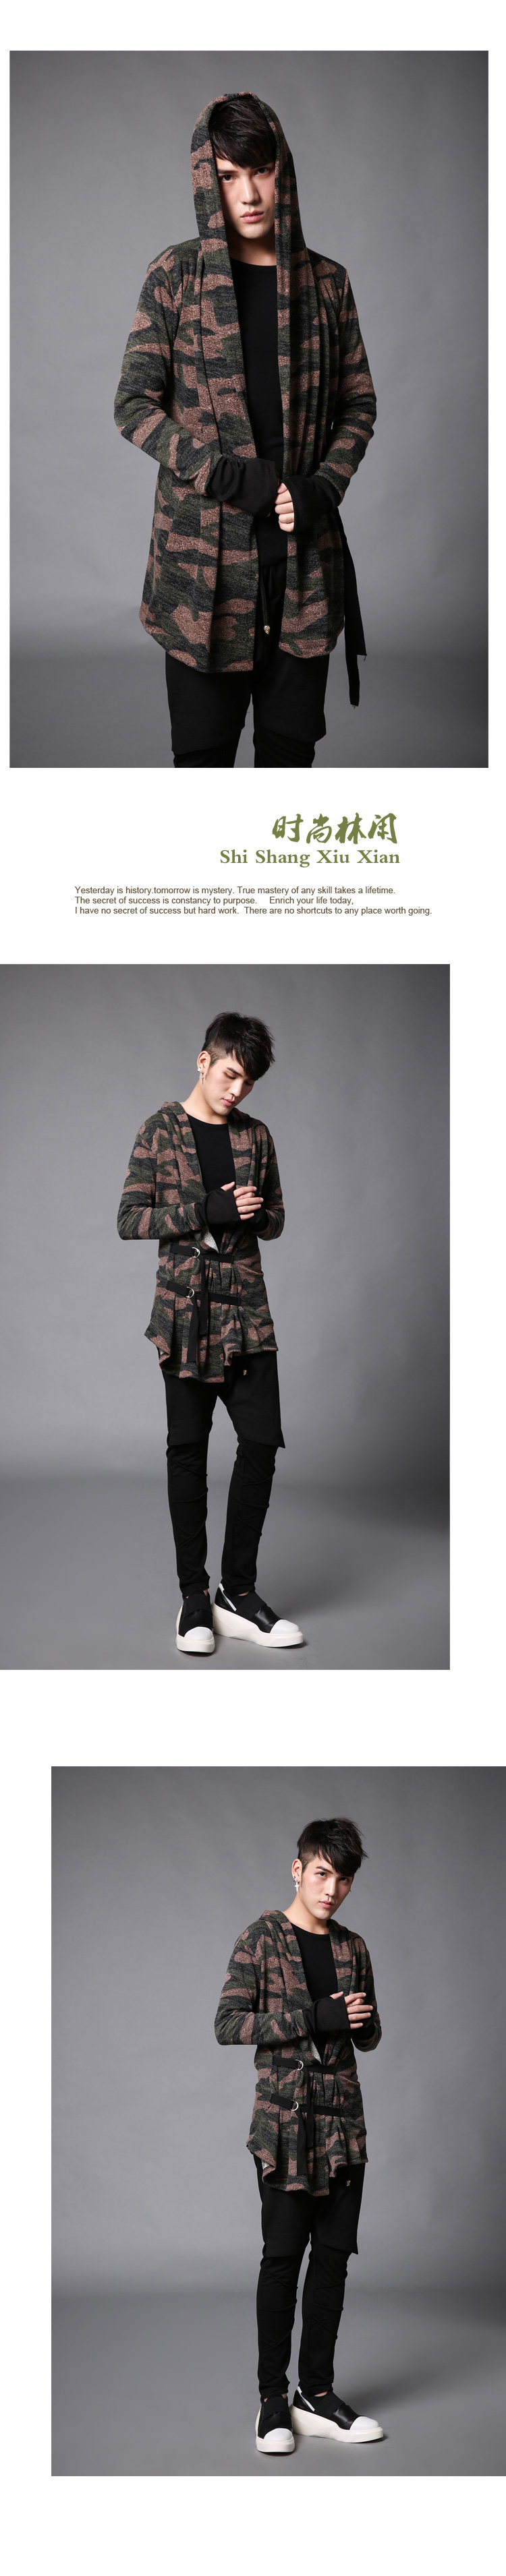 Spring Autumn New Mens Thin Jacket Red Green Camouflage Male Cardigan Coat Slim Fit Hooded Fashion Casual Jacket